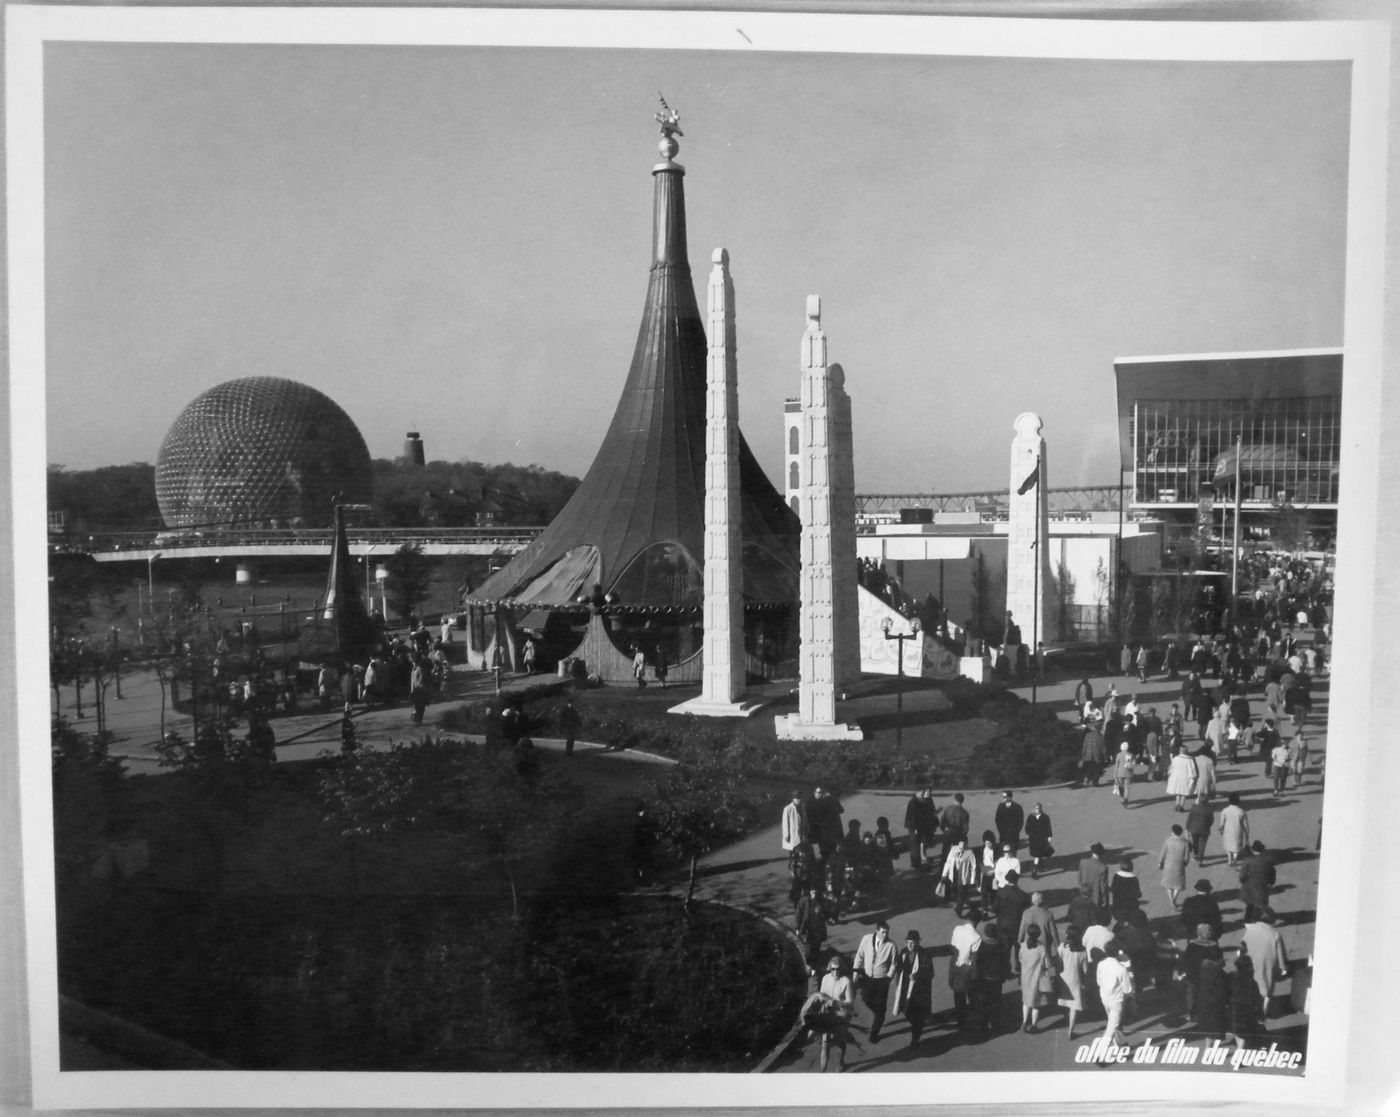 View of the Pavilion of Ethiopia with the Pavilions of the United States and of the Soviet Union in background, Expo 67, Montréal, Québec